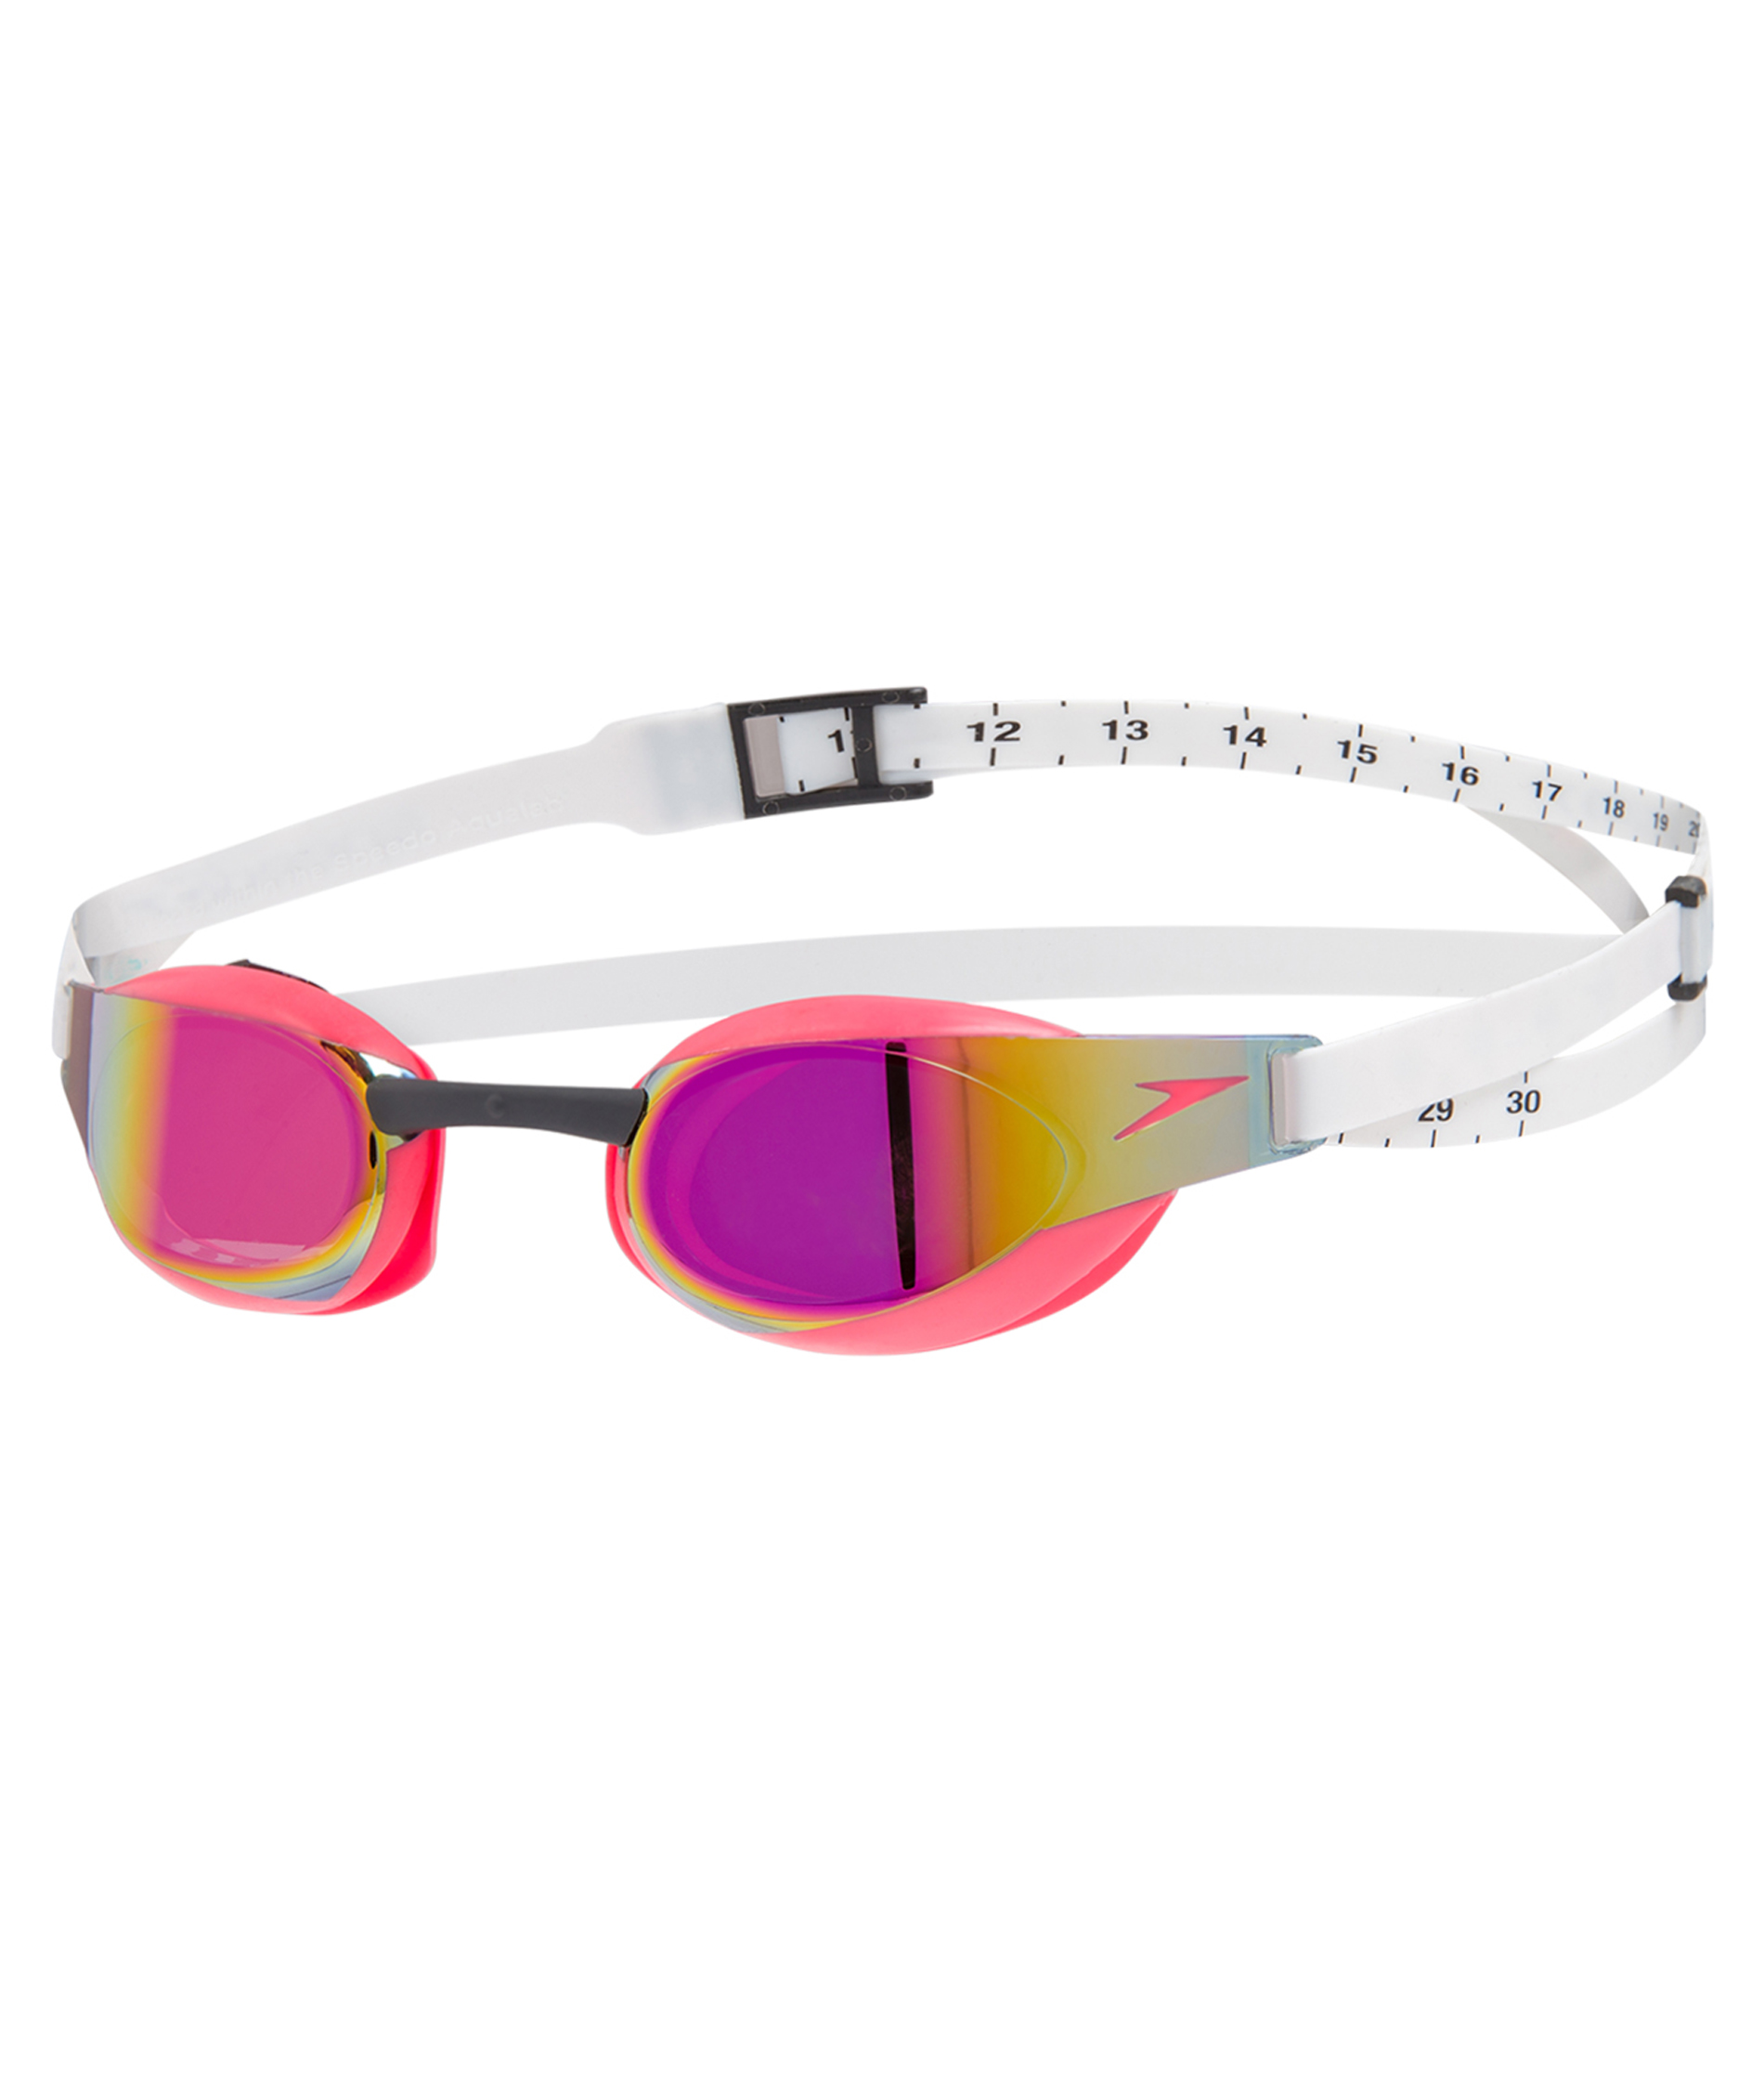 Speedo Fastskin Elite Mirror Goggle - White/Red